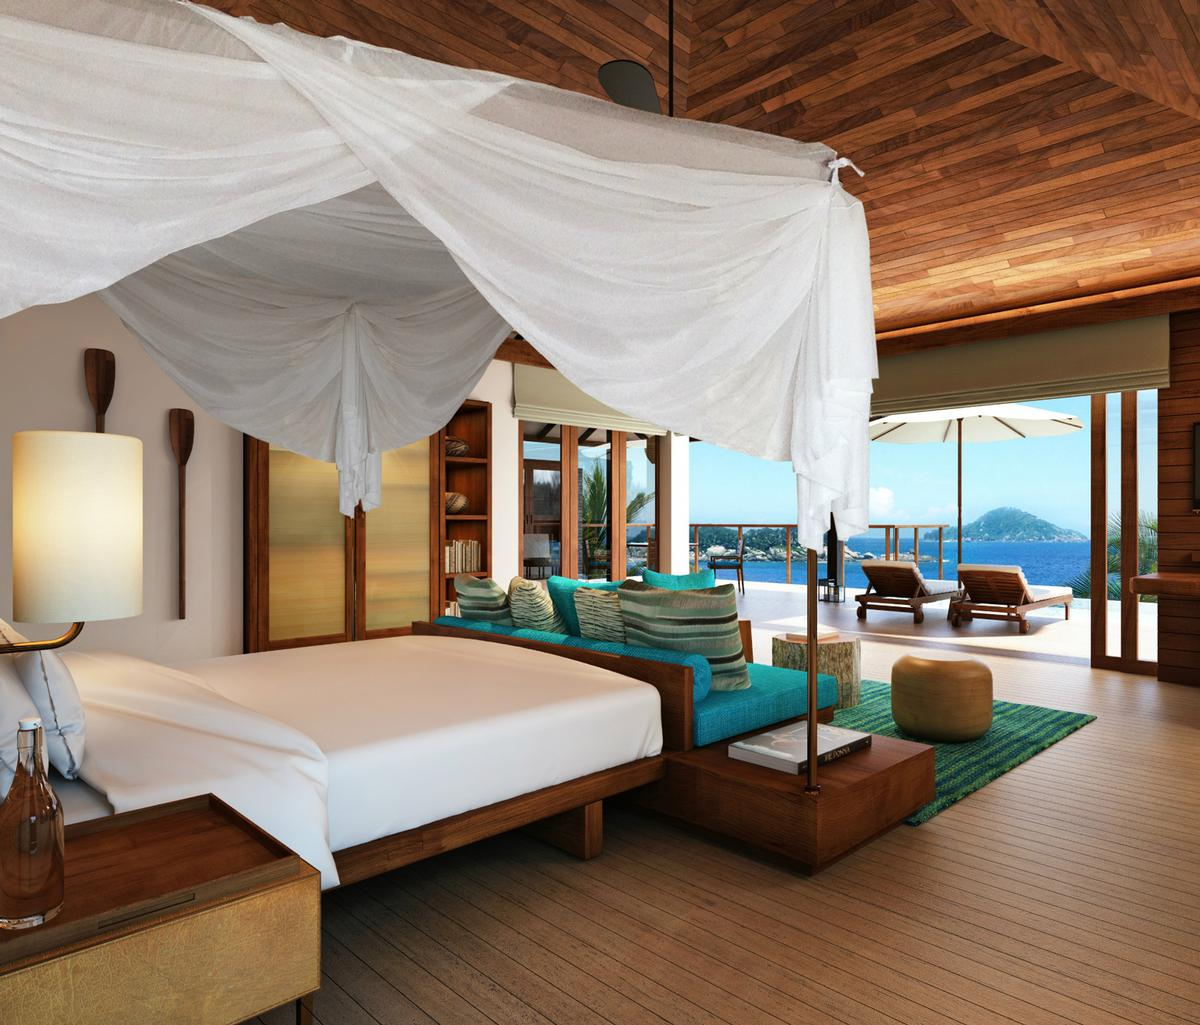 Six Senses Zil Pasyon Spa to be spread over 19,000sq ft of towering ...